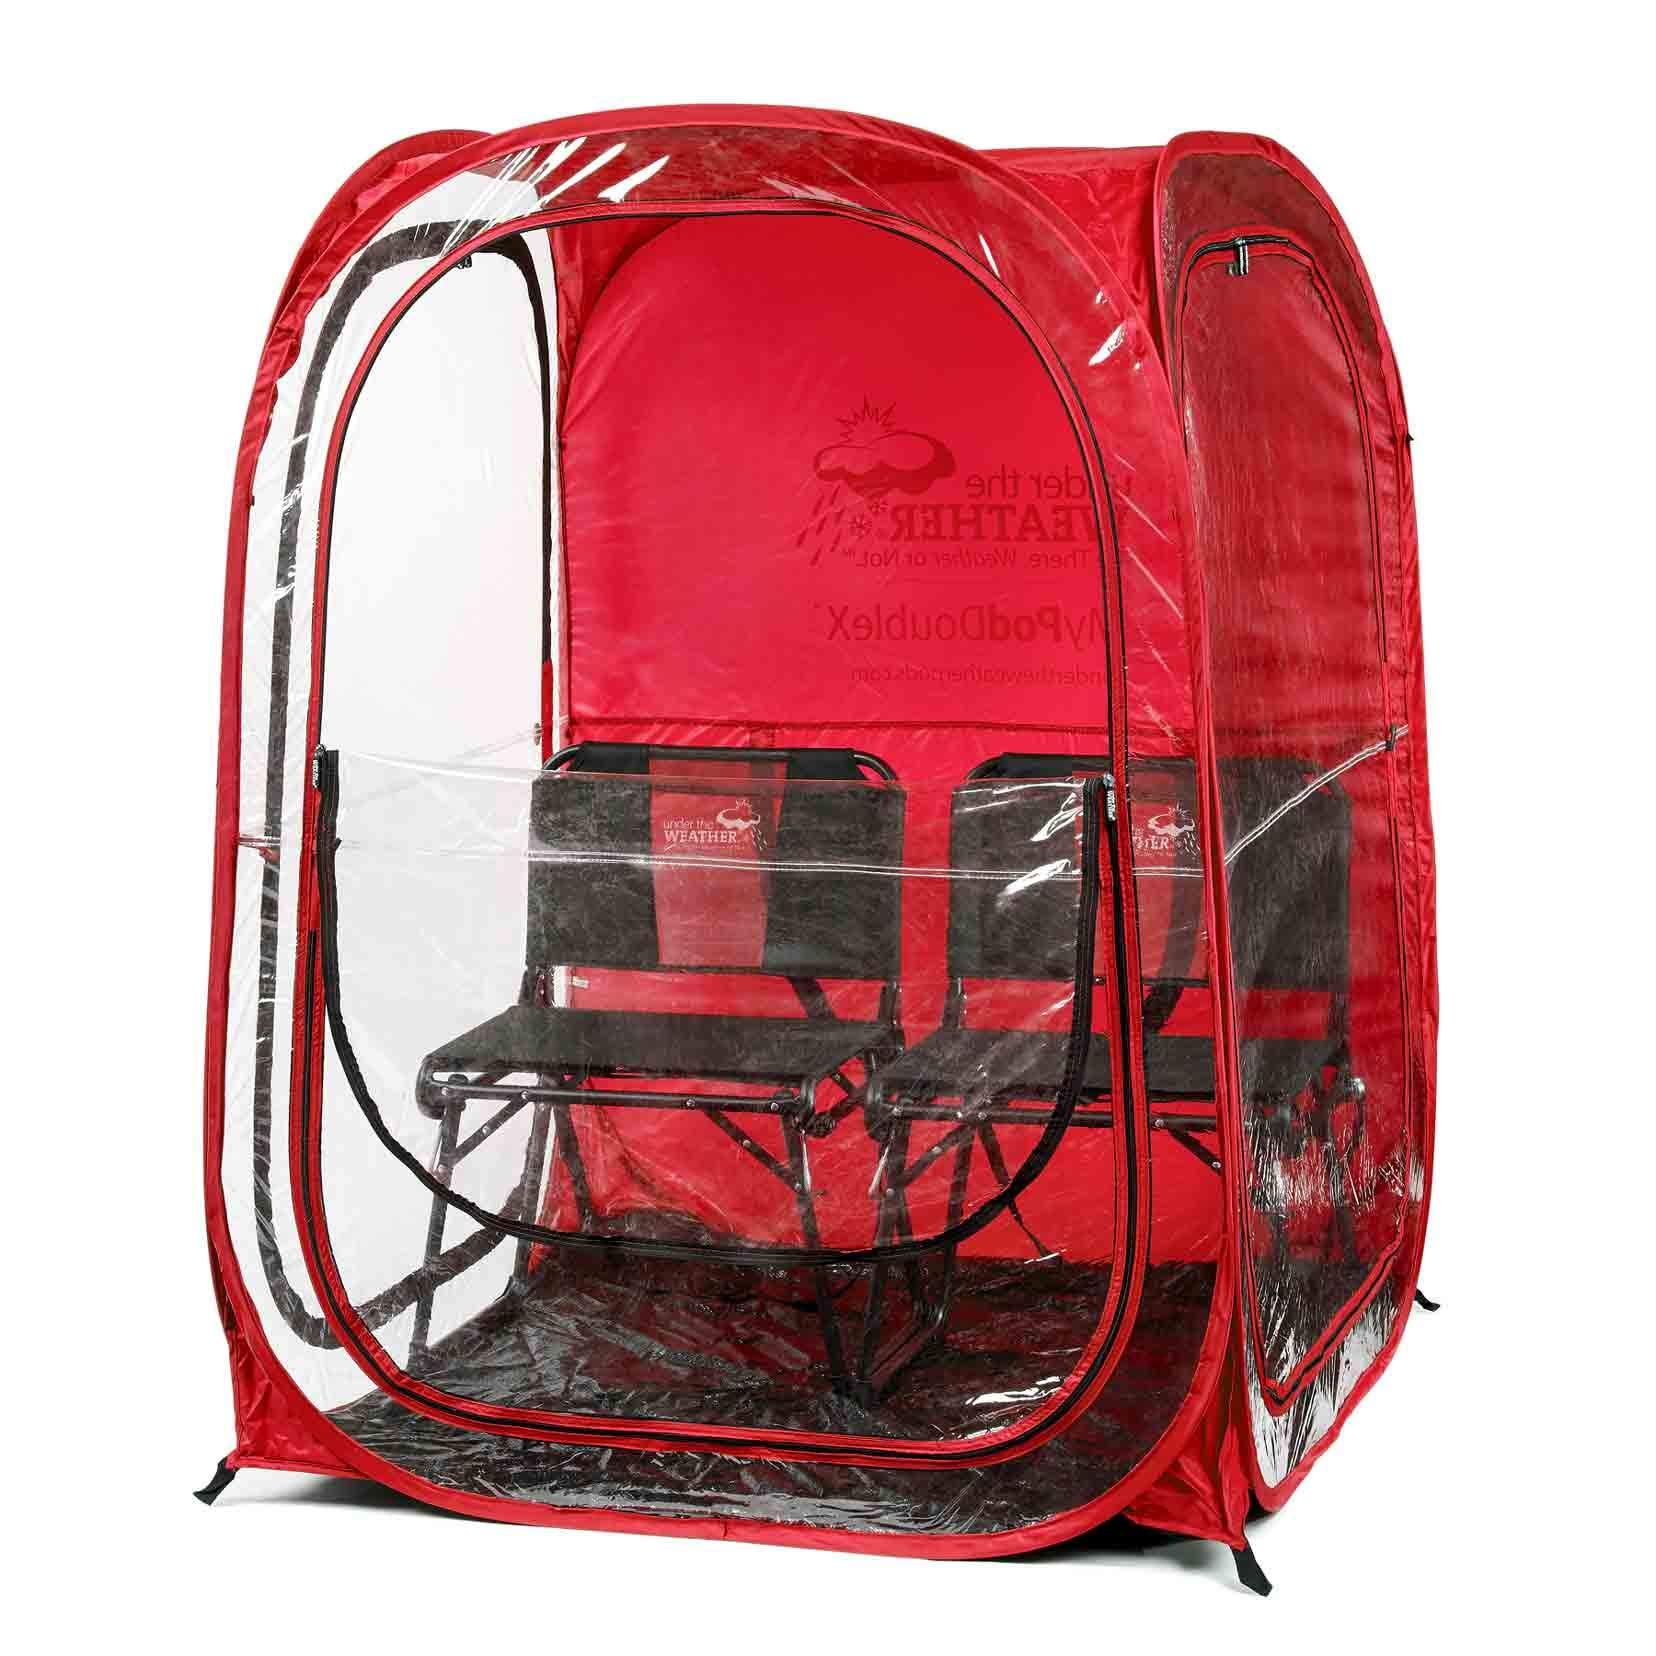 Under the Weather Red MyPodDoubleX 2 Person Pop-up Weather Pod. The Original, Patented WeatherPod by Under the Weather